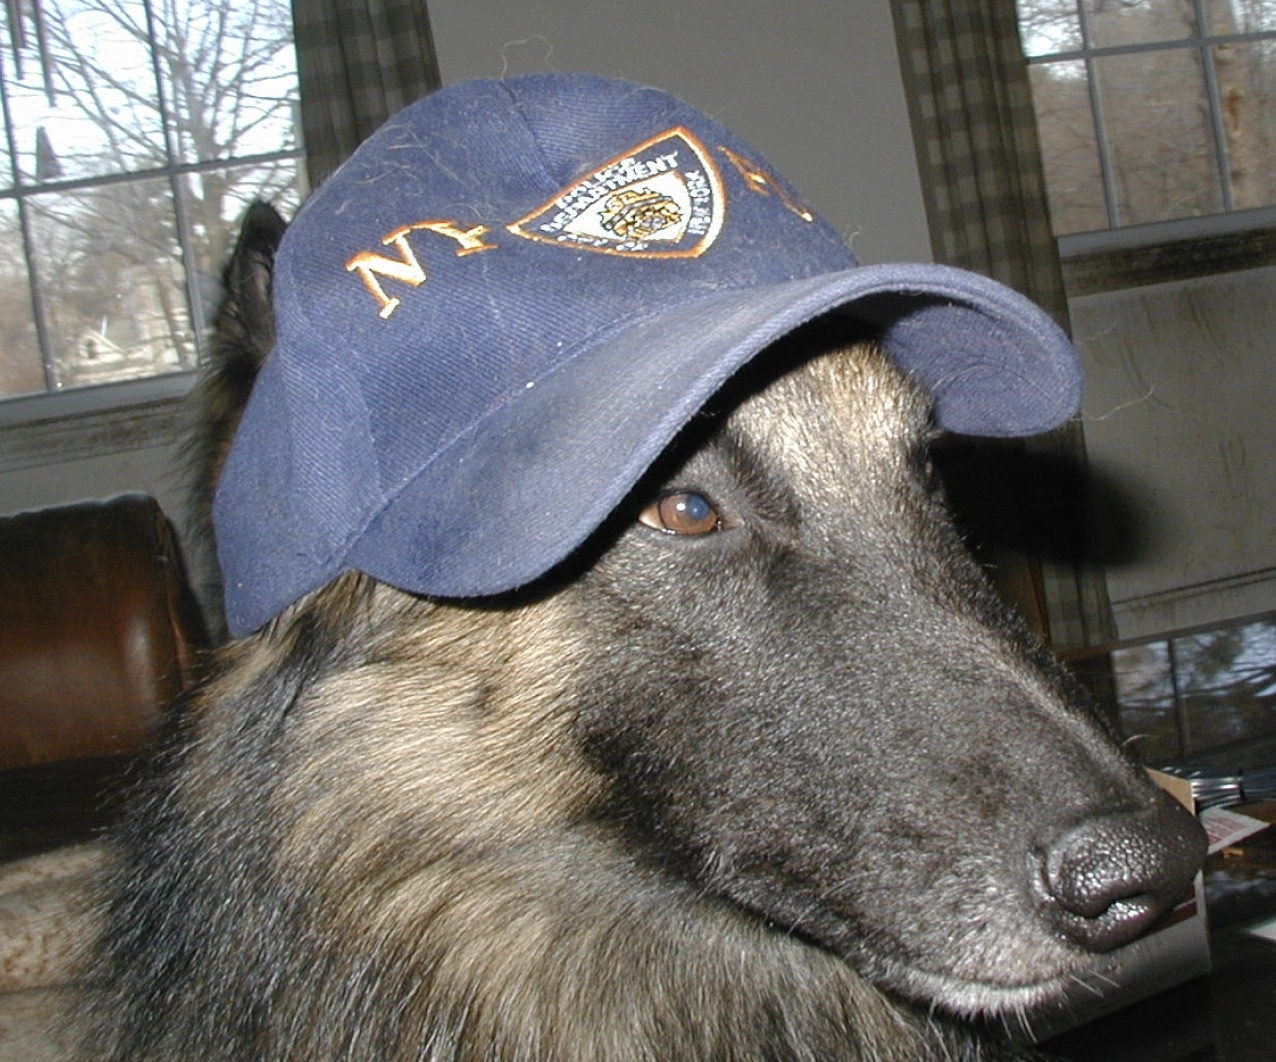 Flash in his NYPD hat